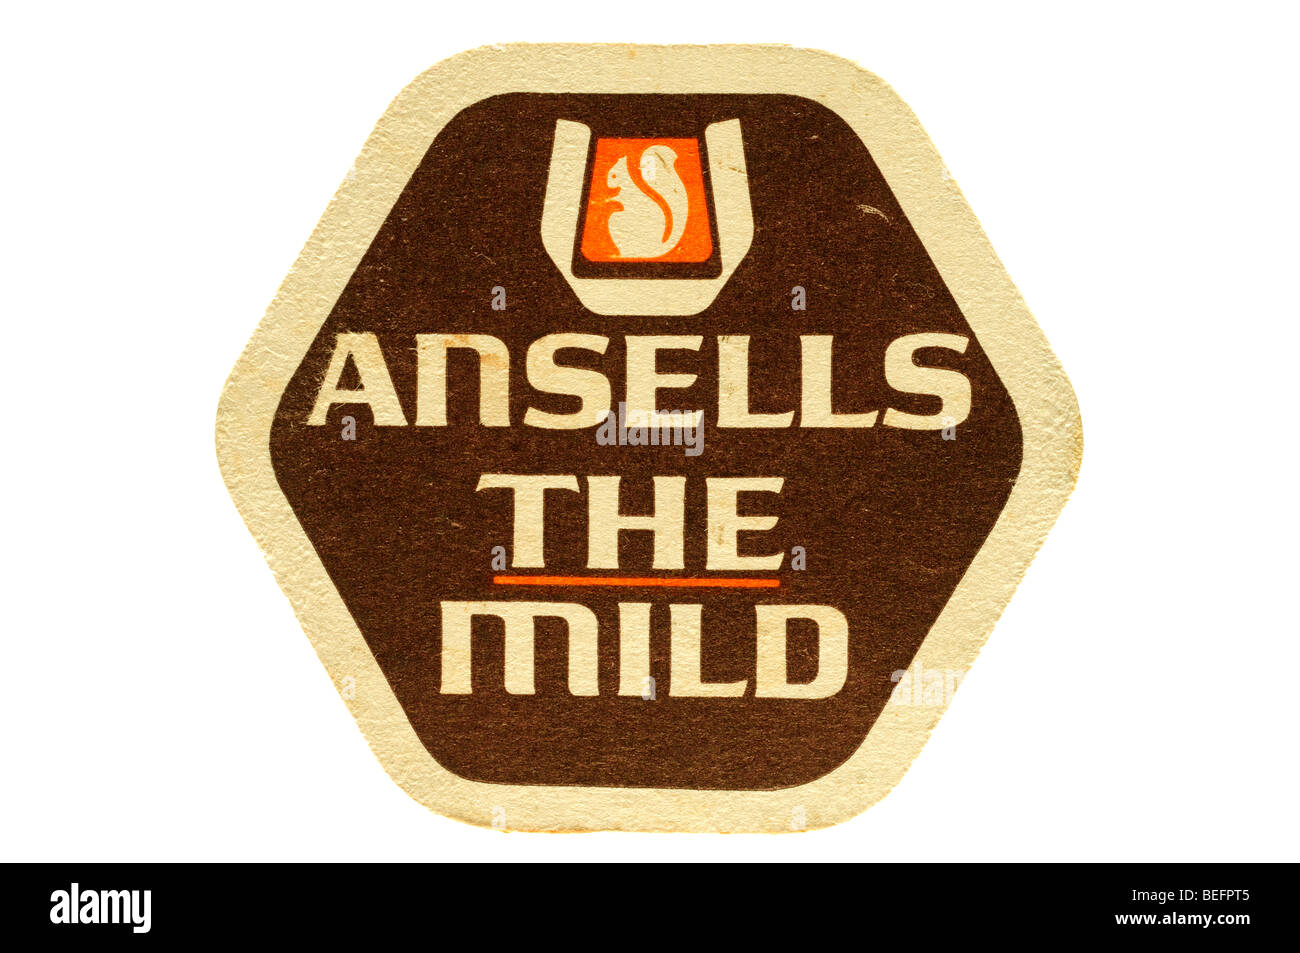 ansells the mild - Stock Image